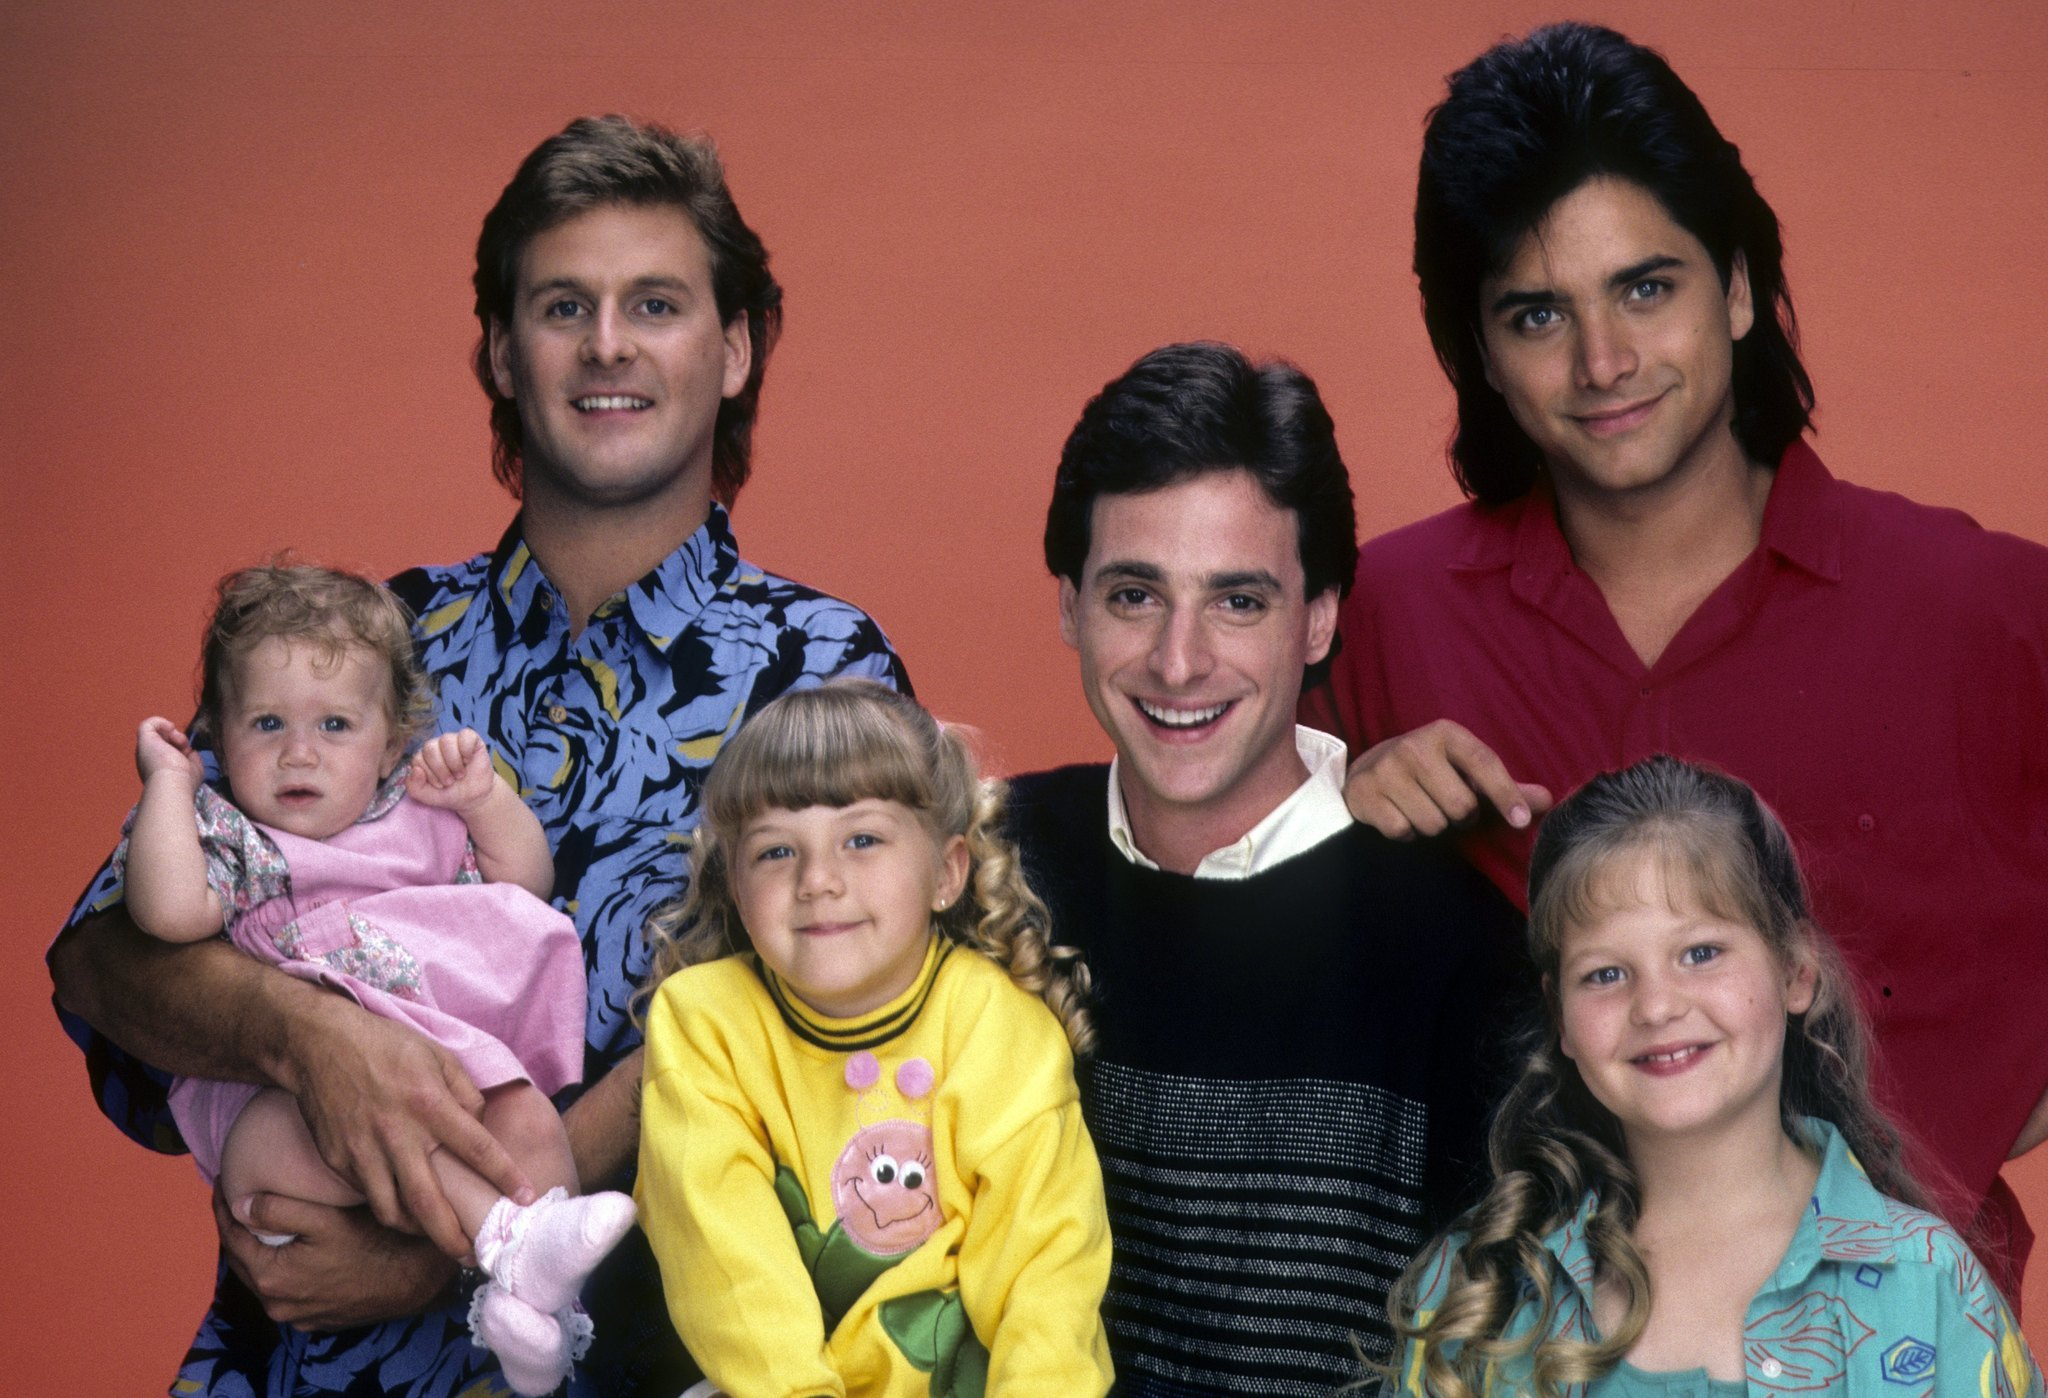 Fuller House producers address that Olsen Twins joke LA Times